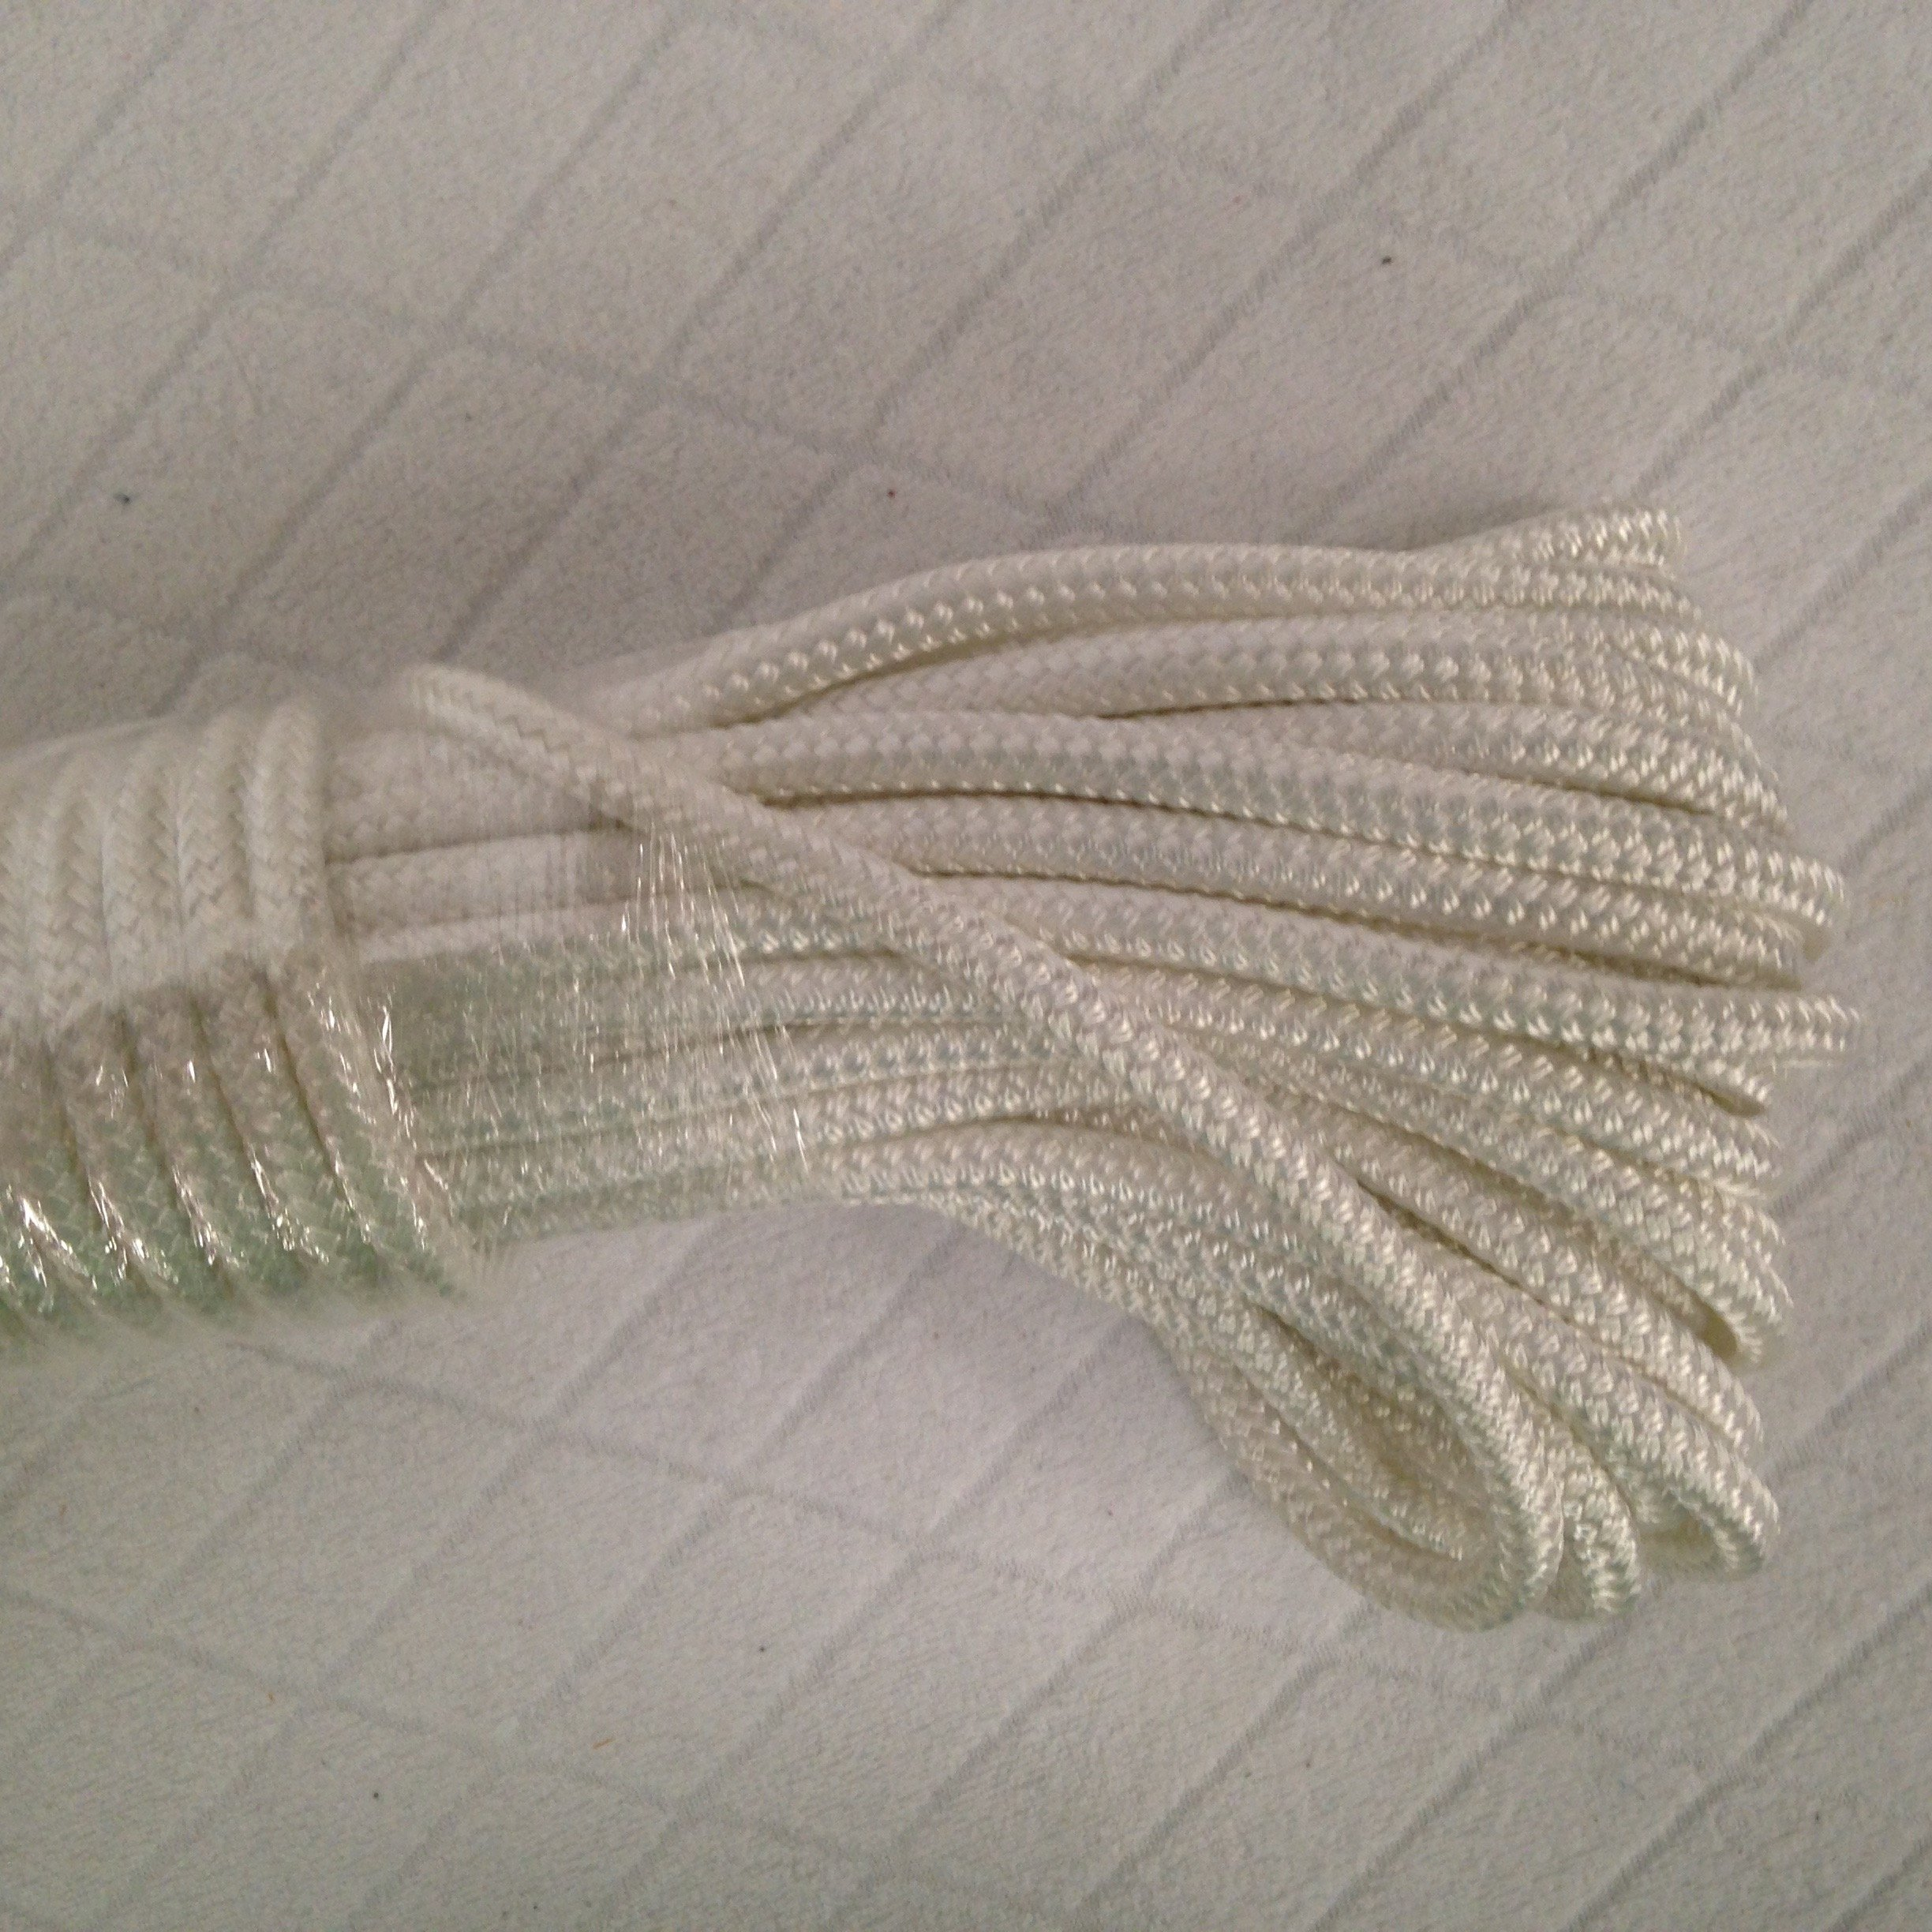 Blue Ox Rope Double Braid Polyester Halyard Flagpole Line, 5/16'' X 100' White